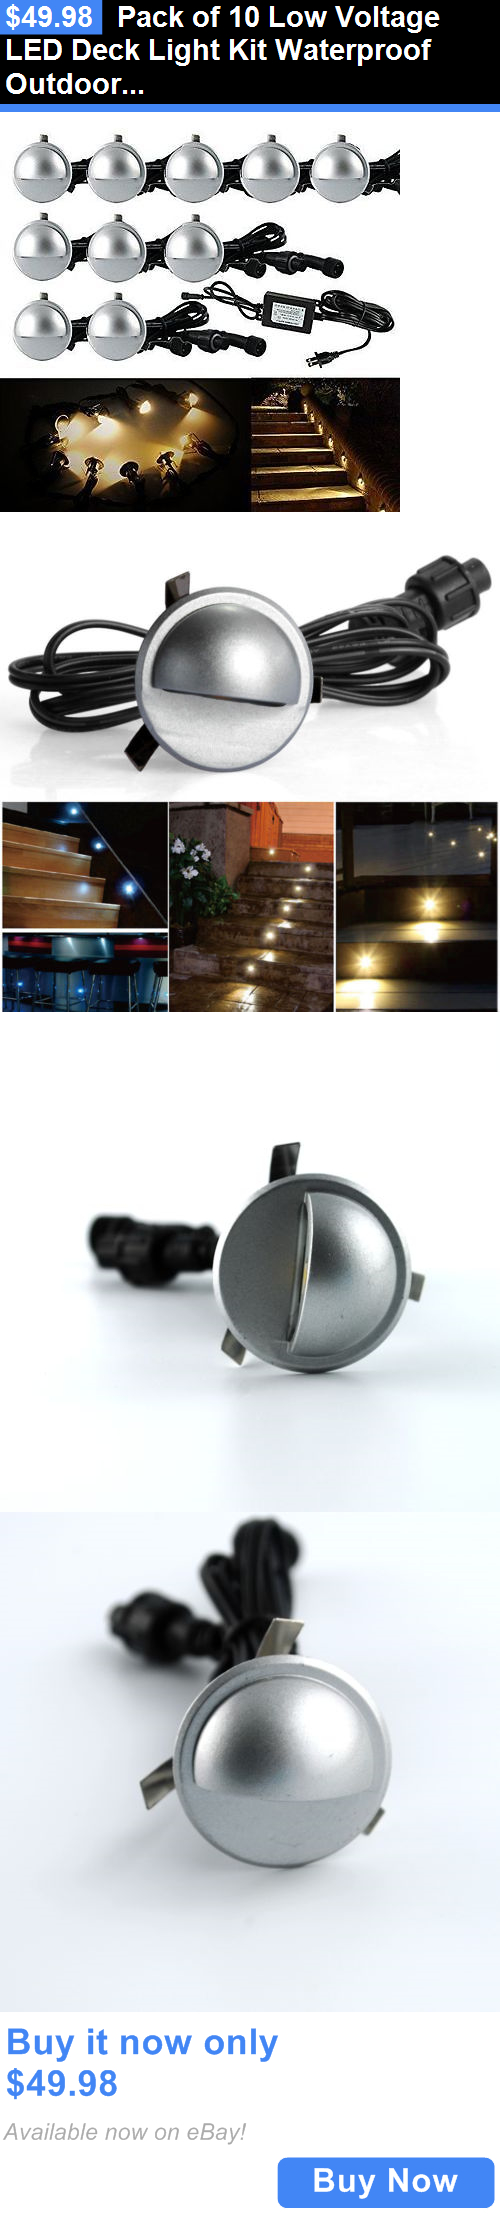 farm and garden Pack Of 10 Low Voltage Led Deck Light Kit